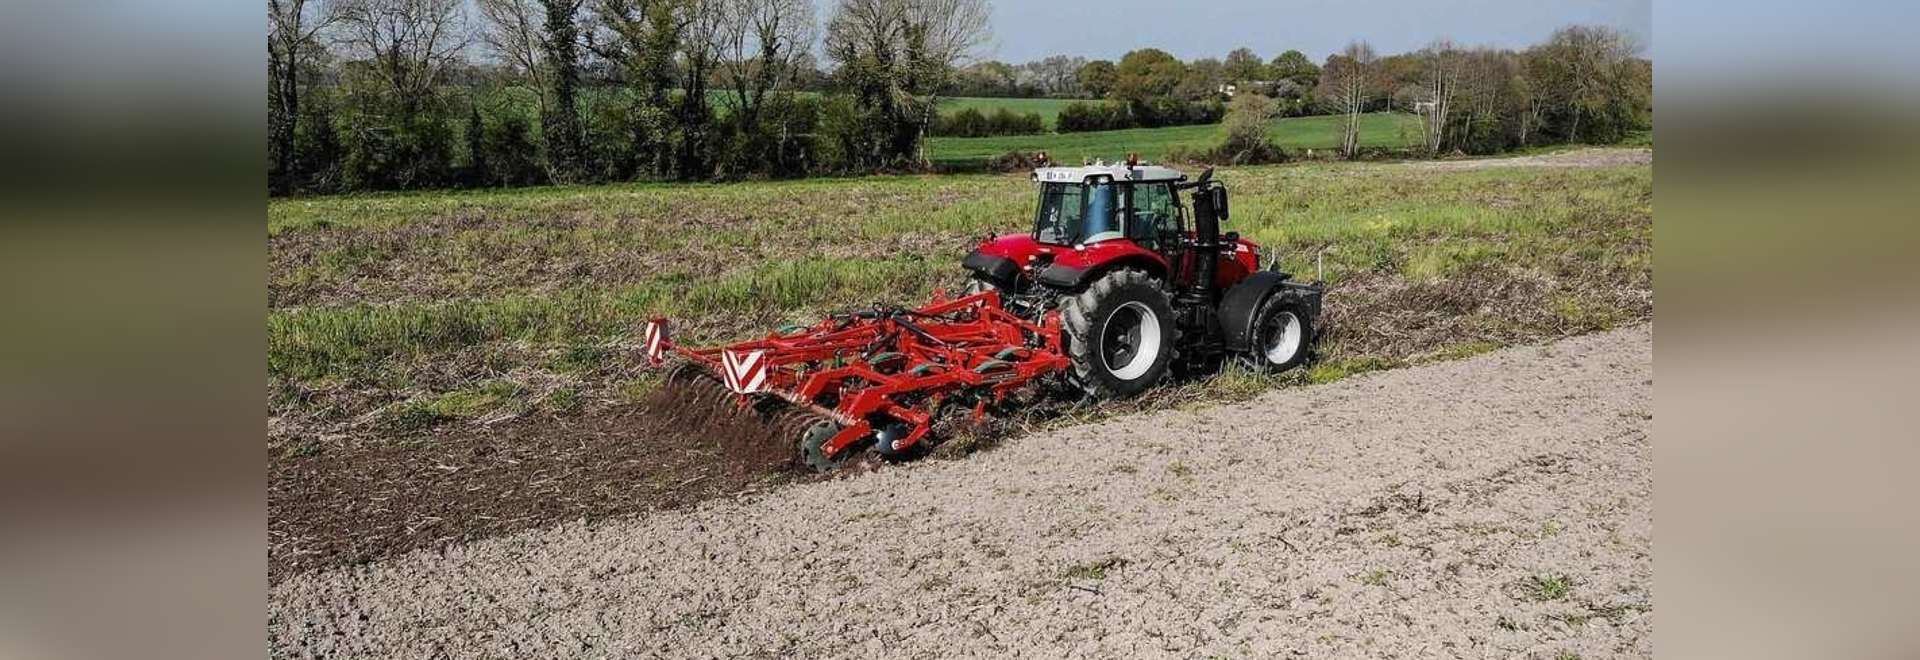 Hydraulic folding extends Enduro cultivator range